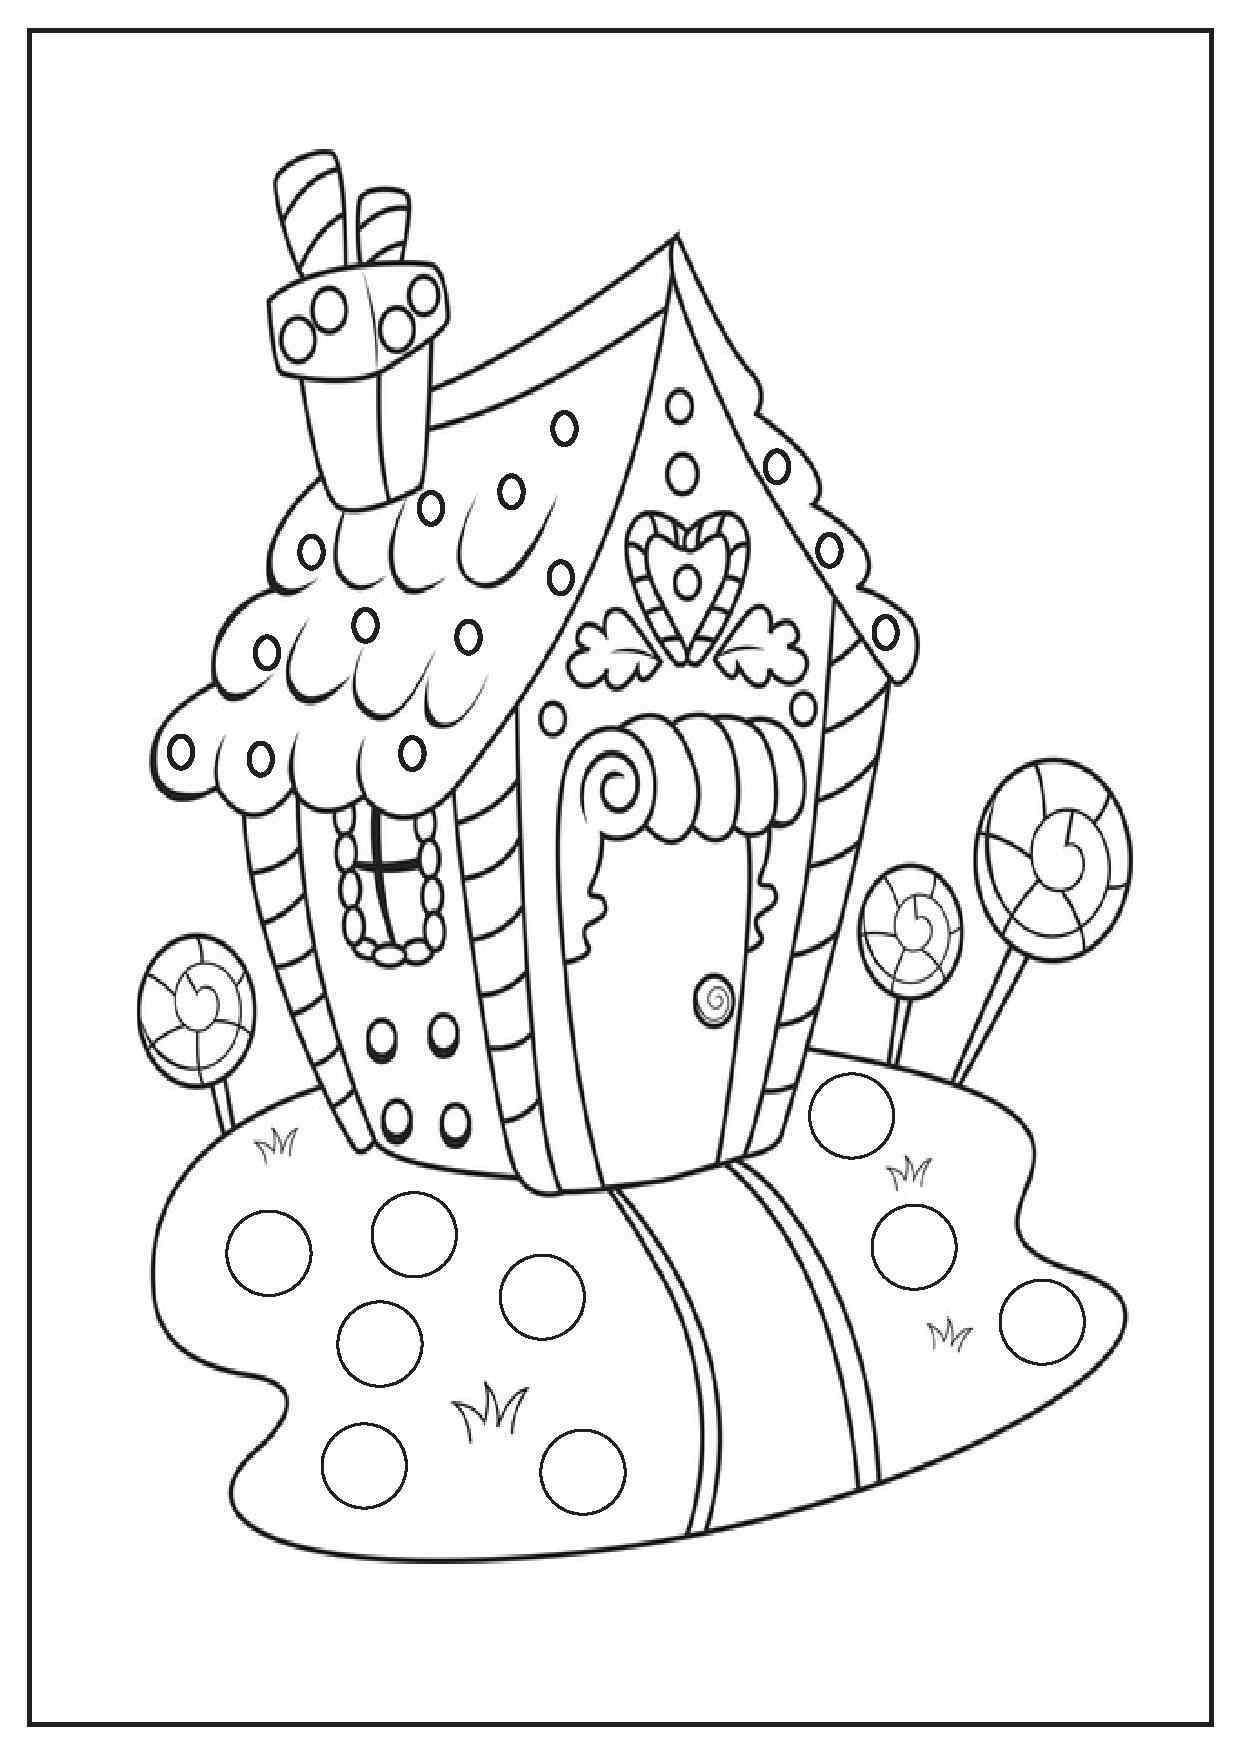 Esszimmer Fellbach Ikea Teppich 240 X 300 Esszimmer Im Rathaus Fellbach Teppich Wohnzimmer Inspiration | Christmas Coloring Sheets, Printable Christmas Coloring Pages, Free Christmas Coloring Pages